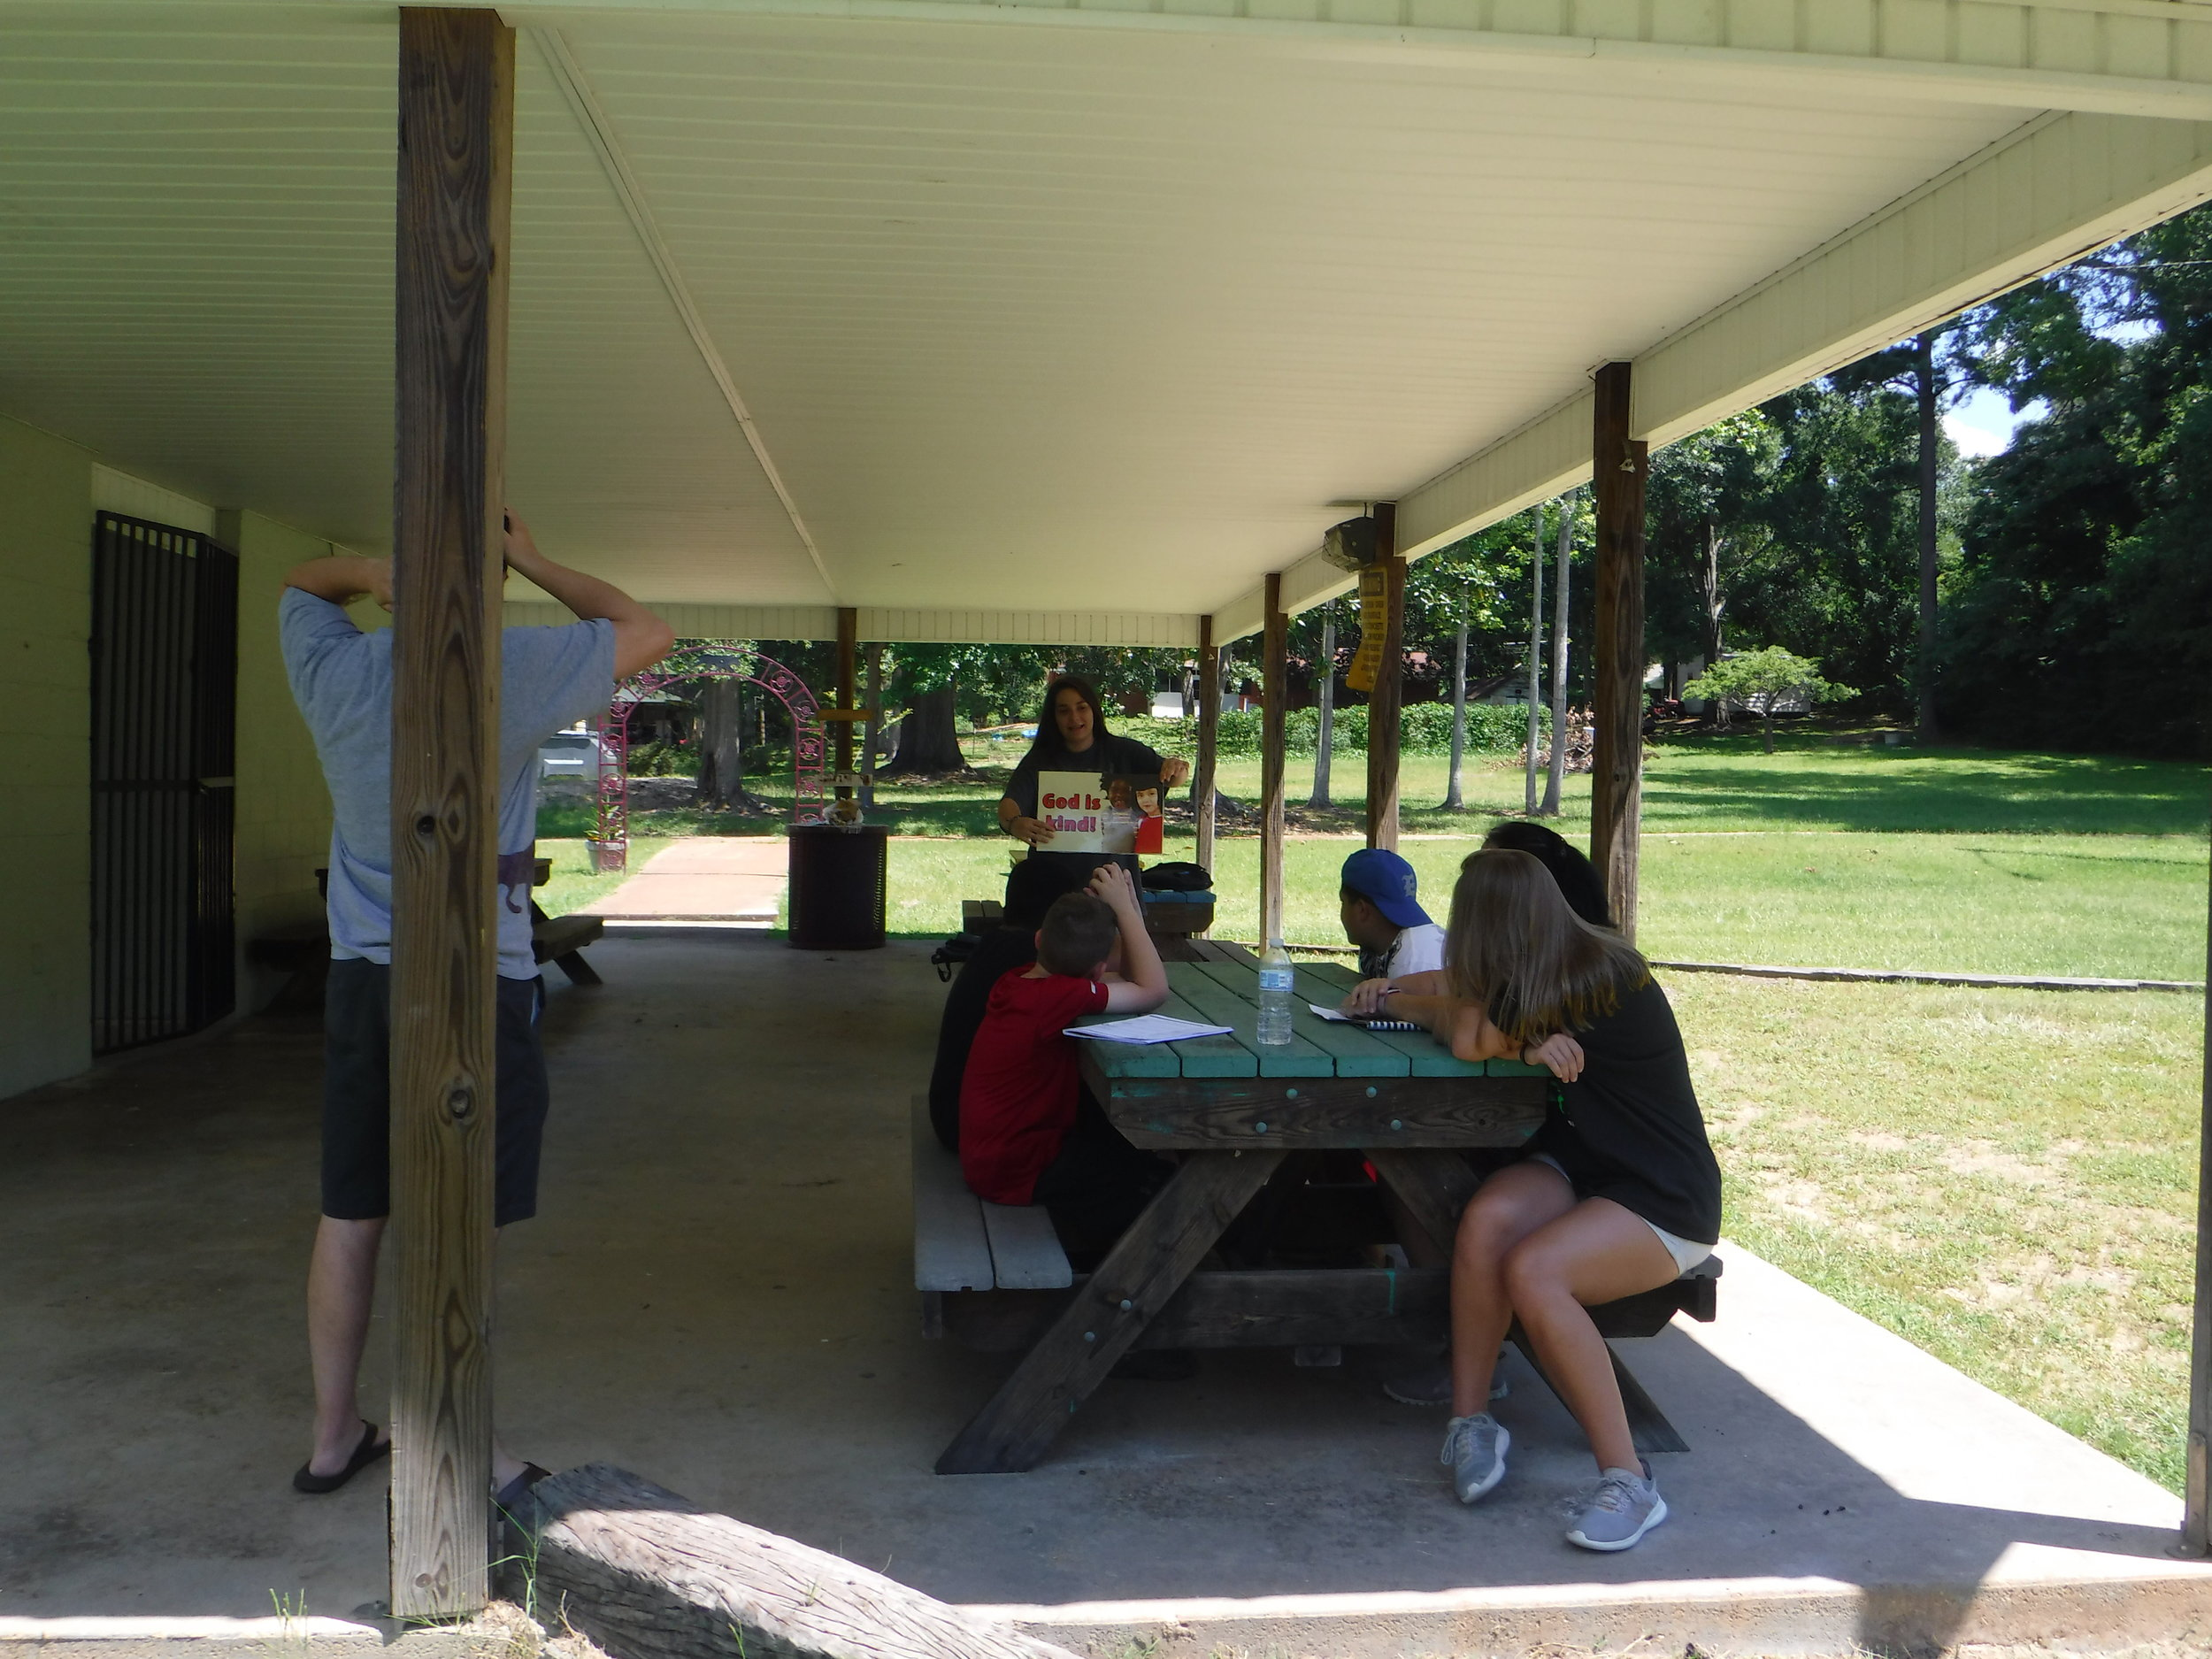 Abby Solomon and Mary Phyfer Parker,  Christian Youth In Action ®  interns, with Jeremy Brown, student minister, and Cheryl Roberson, members of FBC Eclectic, host  5-Day Club®  at Panther Palace Park in the center of town.